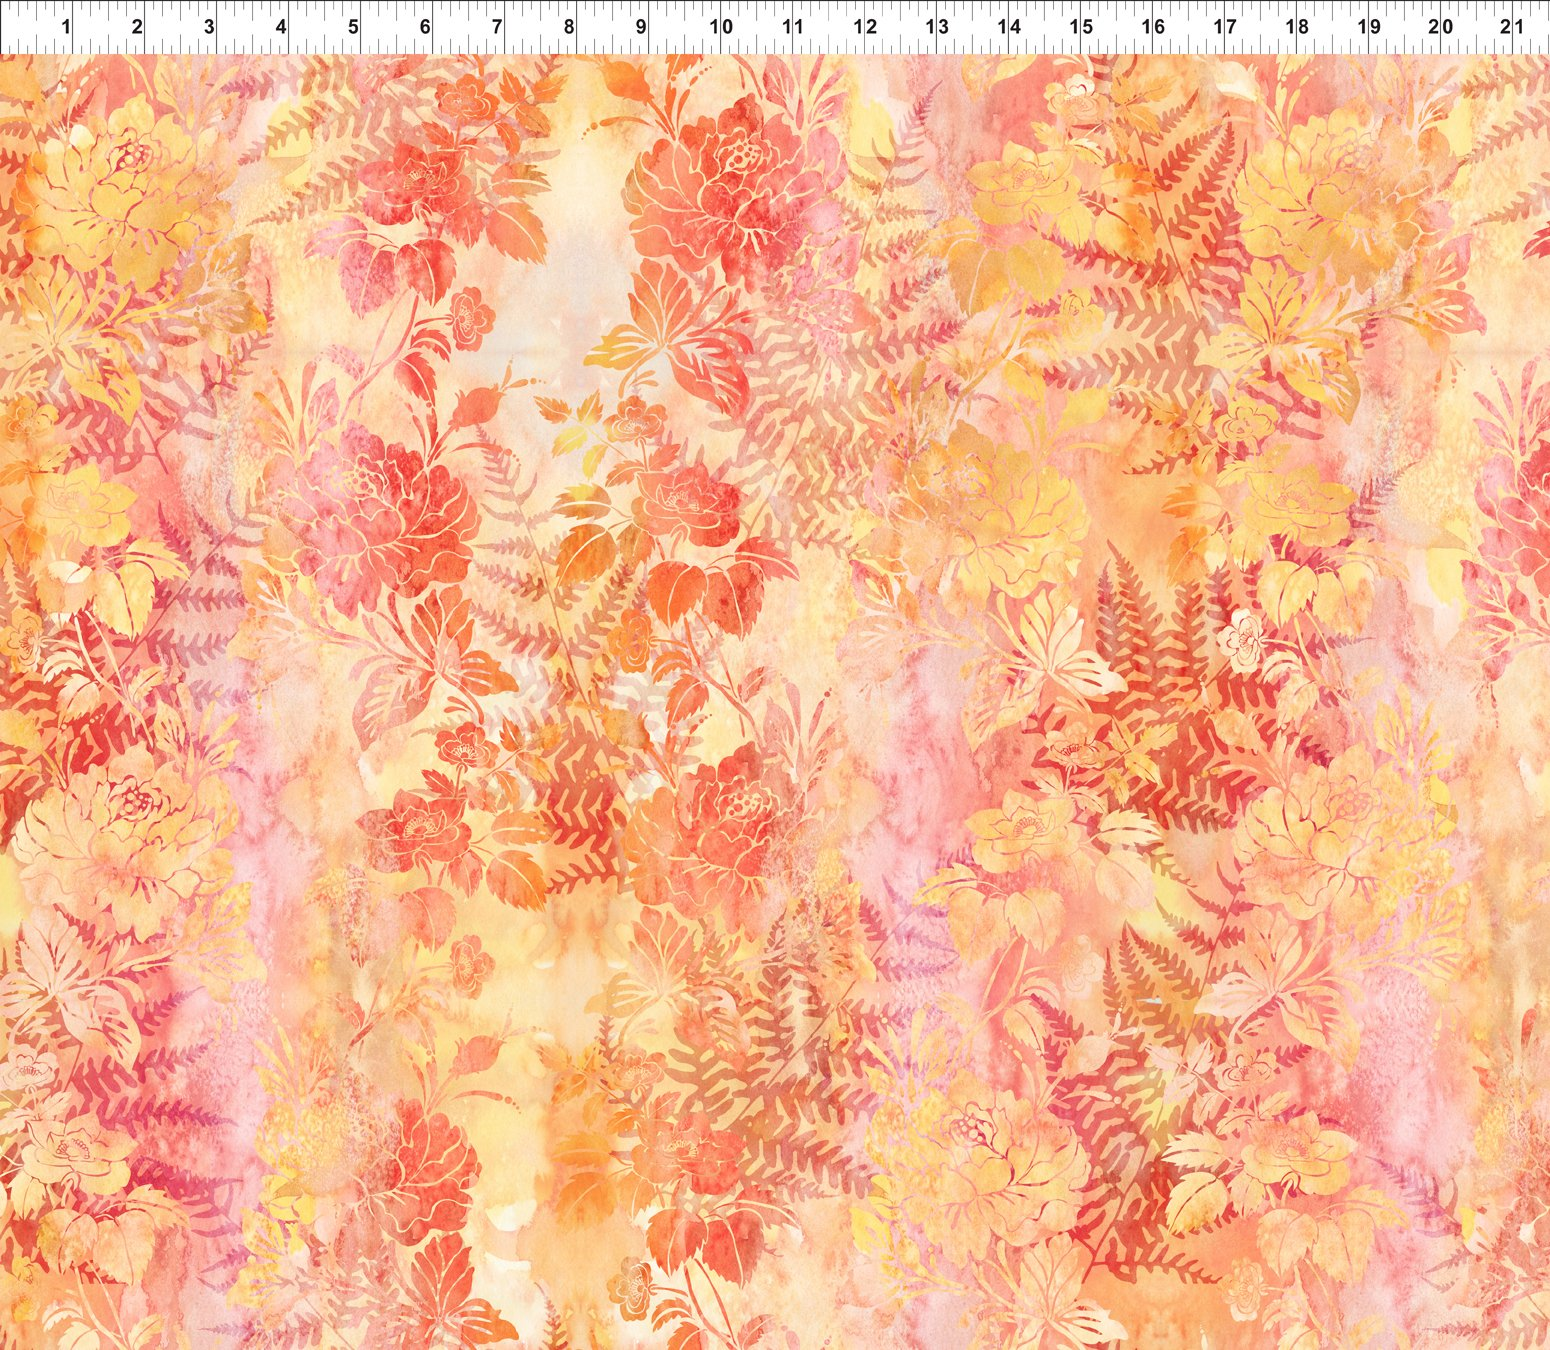 Garden of Dreams-Blooms Soft Orange 1JYL 2